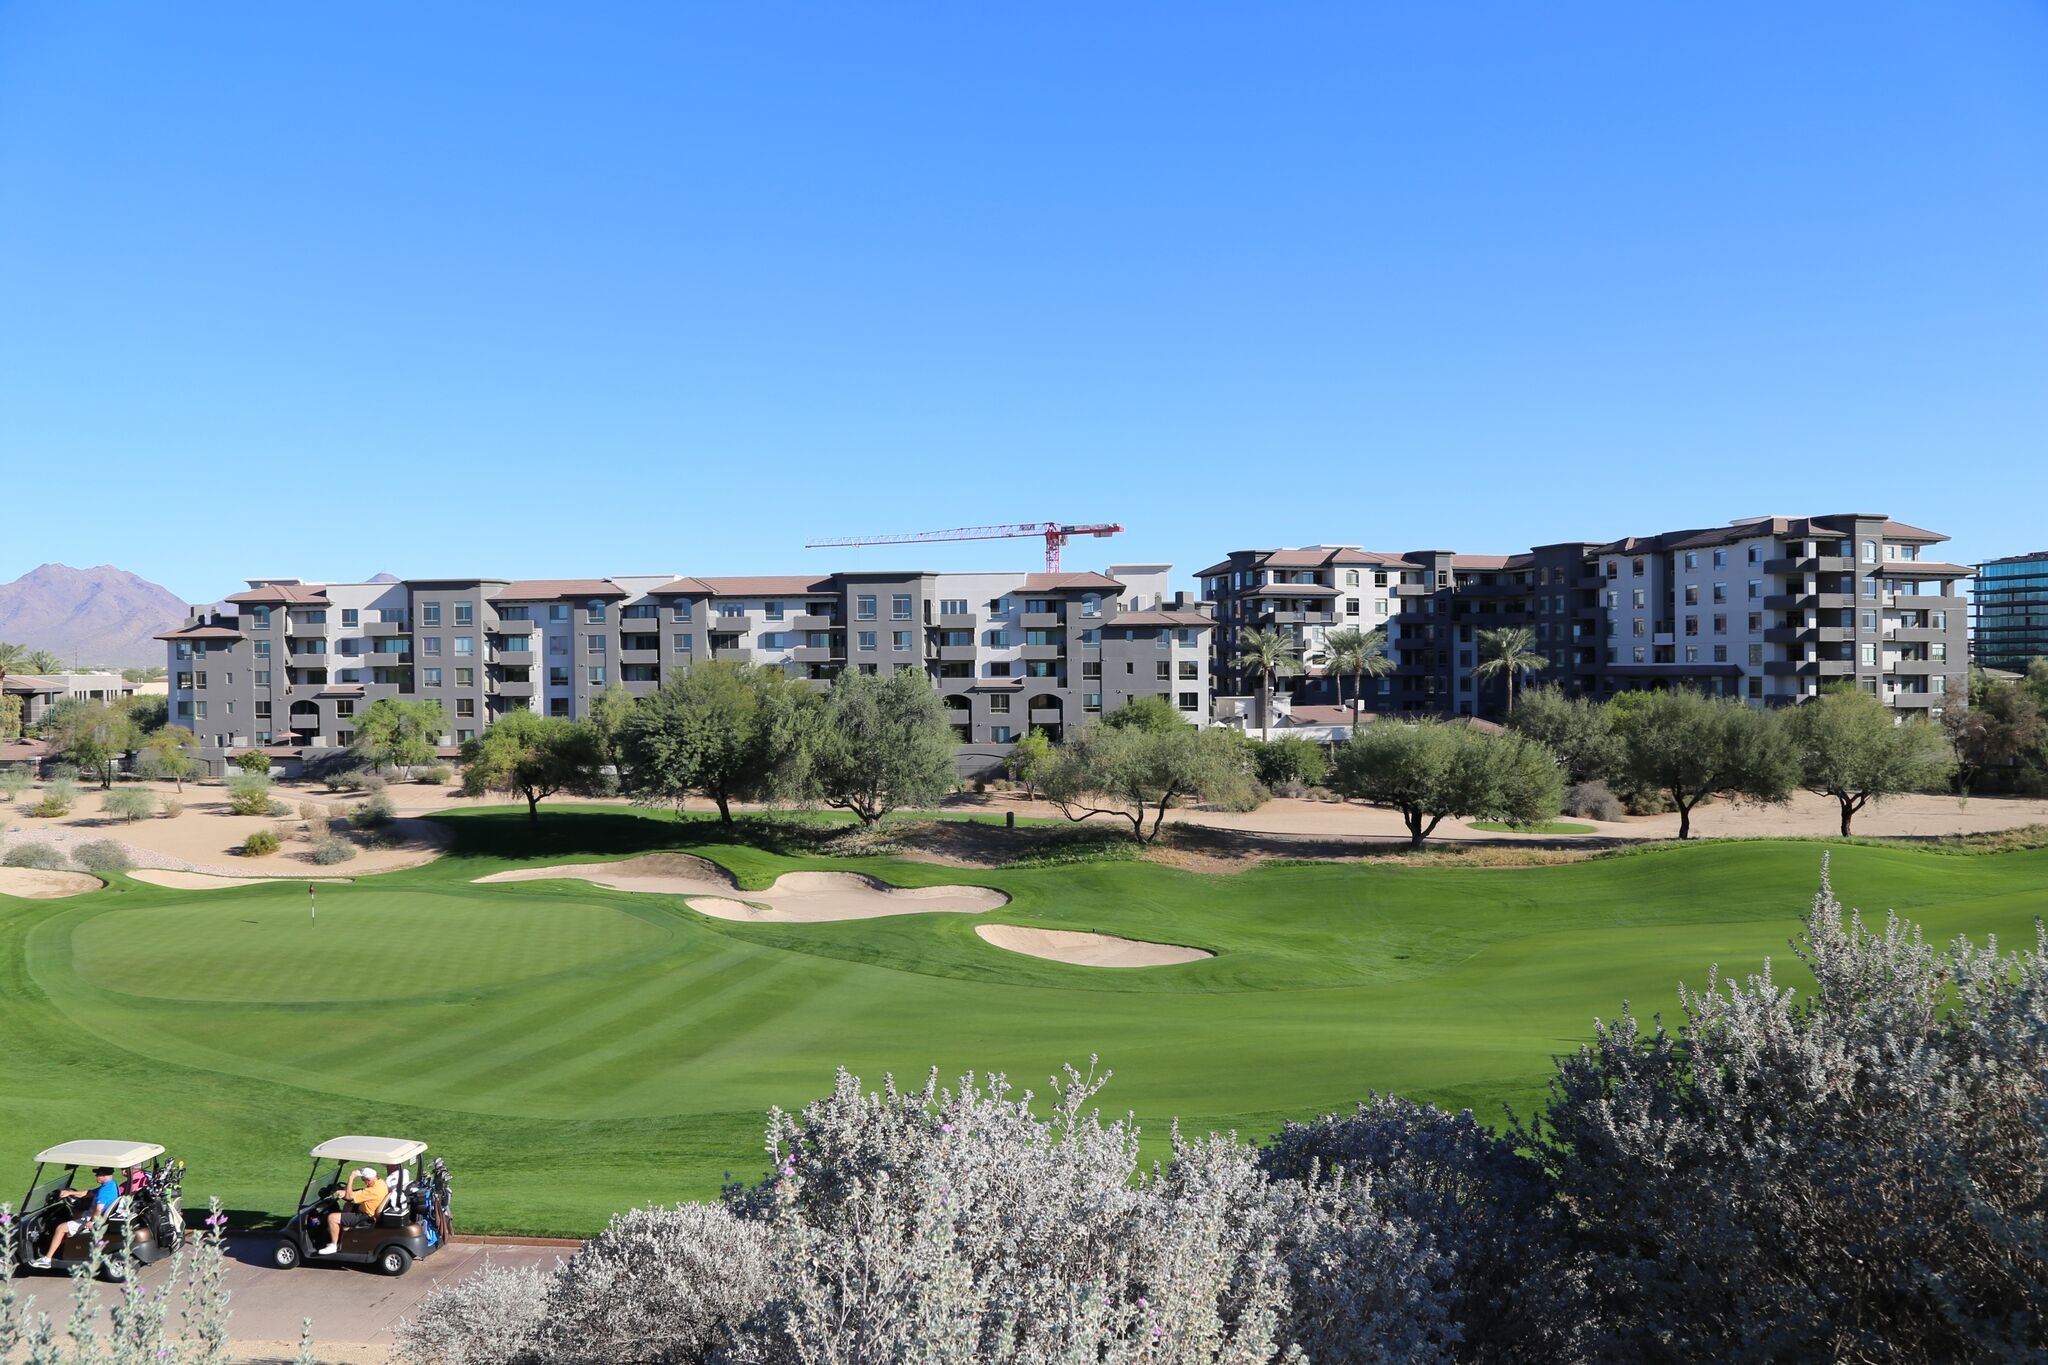 A view of The Landmark Condominium from the Westin Kierland Golf Course.